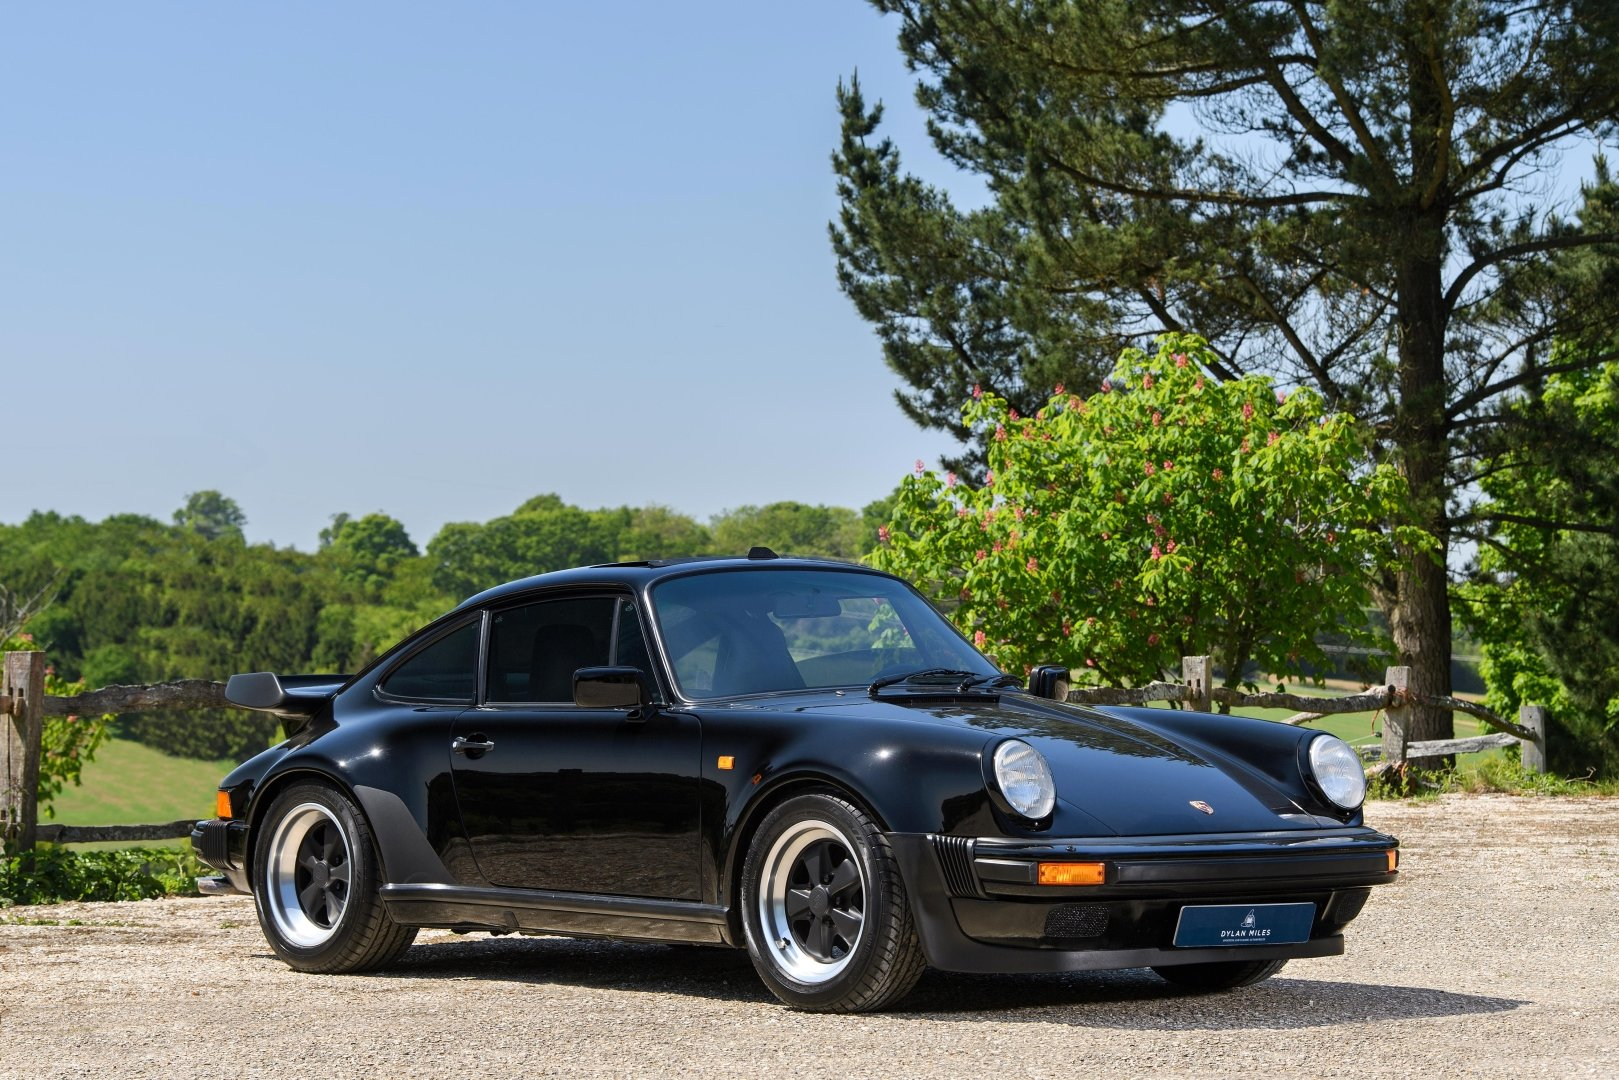 1989 Porsche 930 Turbo 'S' - G50 5 Speed - One of 55  For Sale (picture 1 of 6)